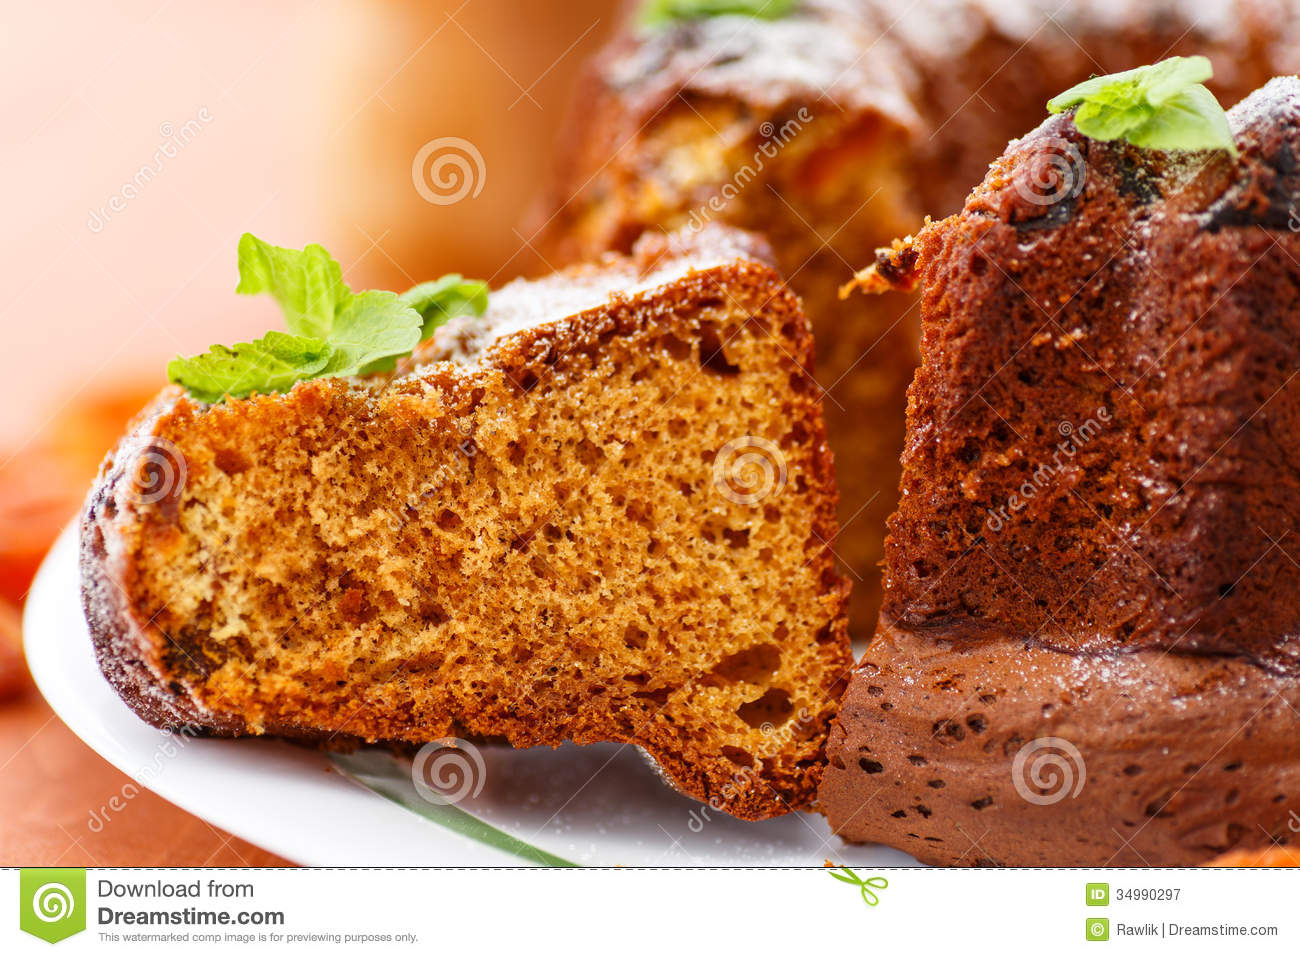 Clipart Of Honey Cake : Honey Cake Royalty Free Stock Photography - Image: 34990297